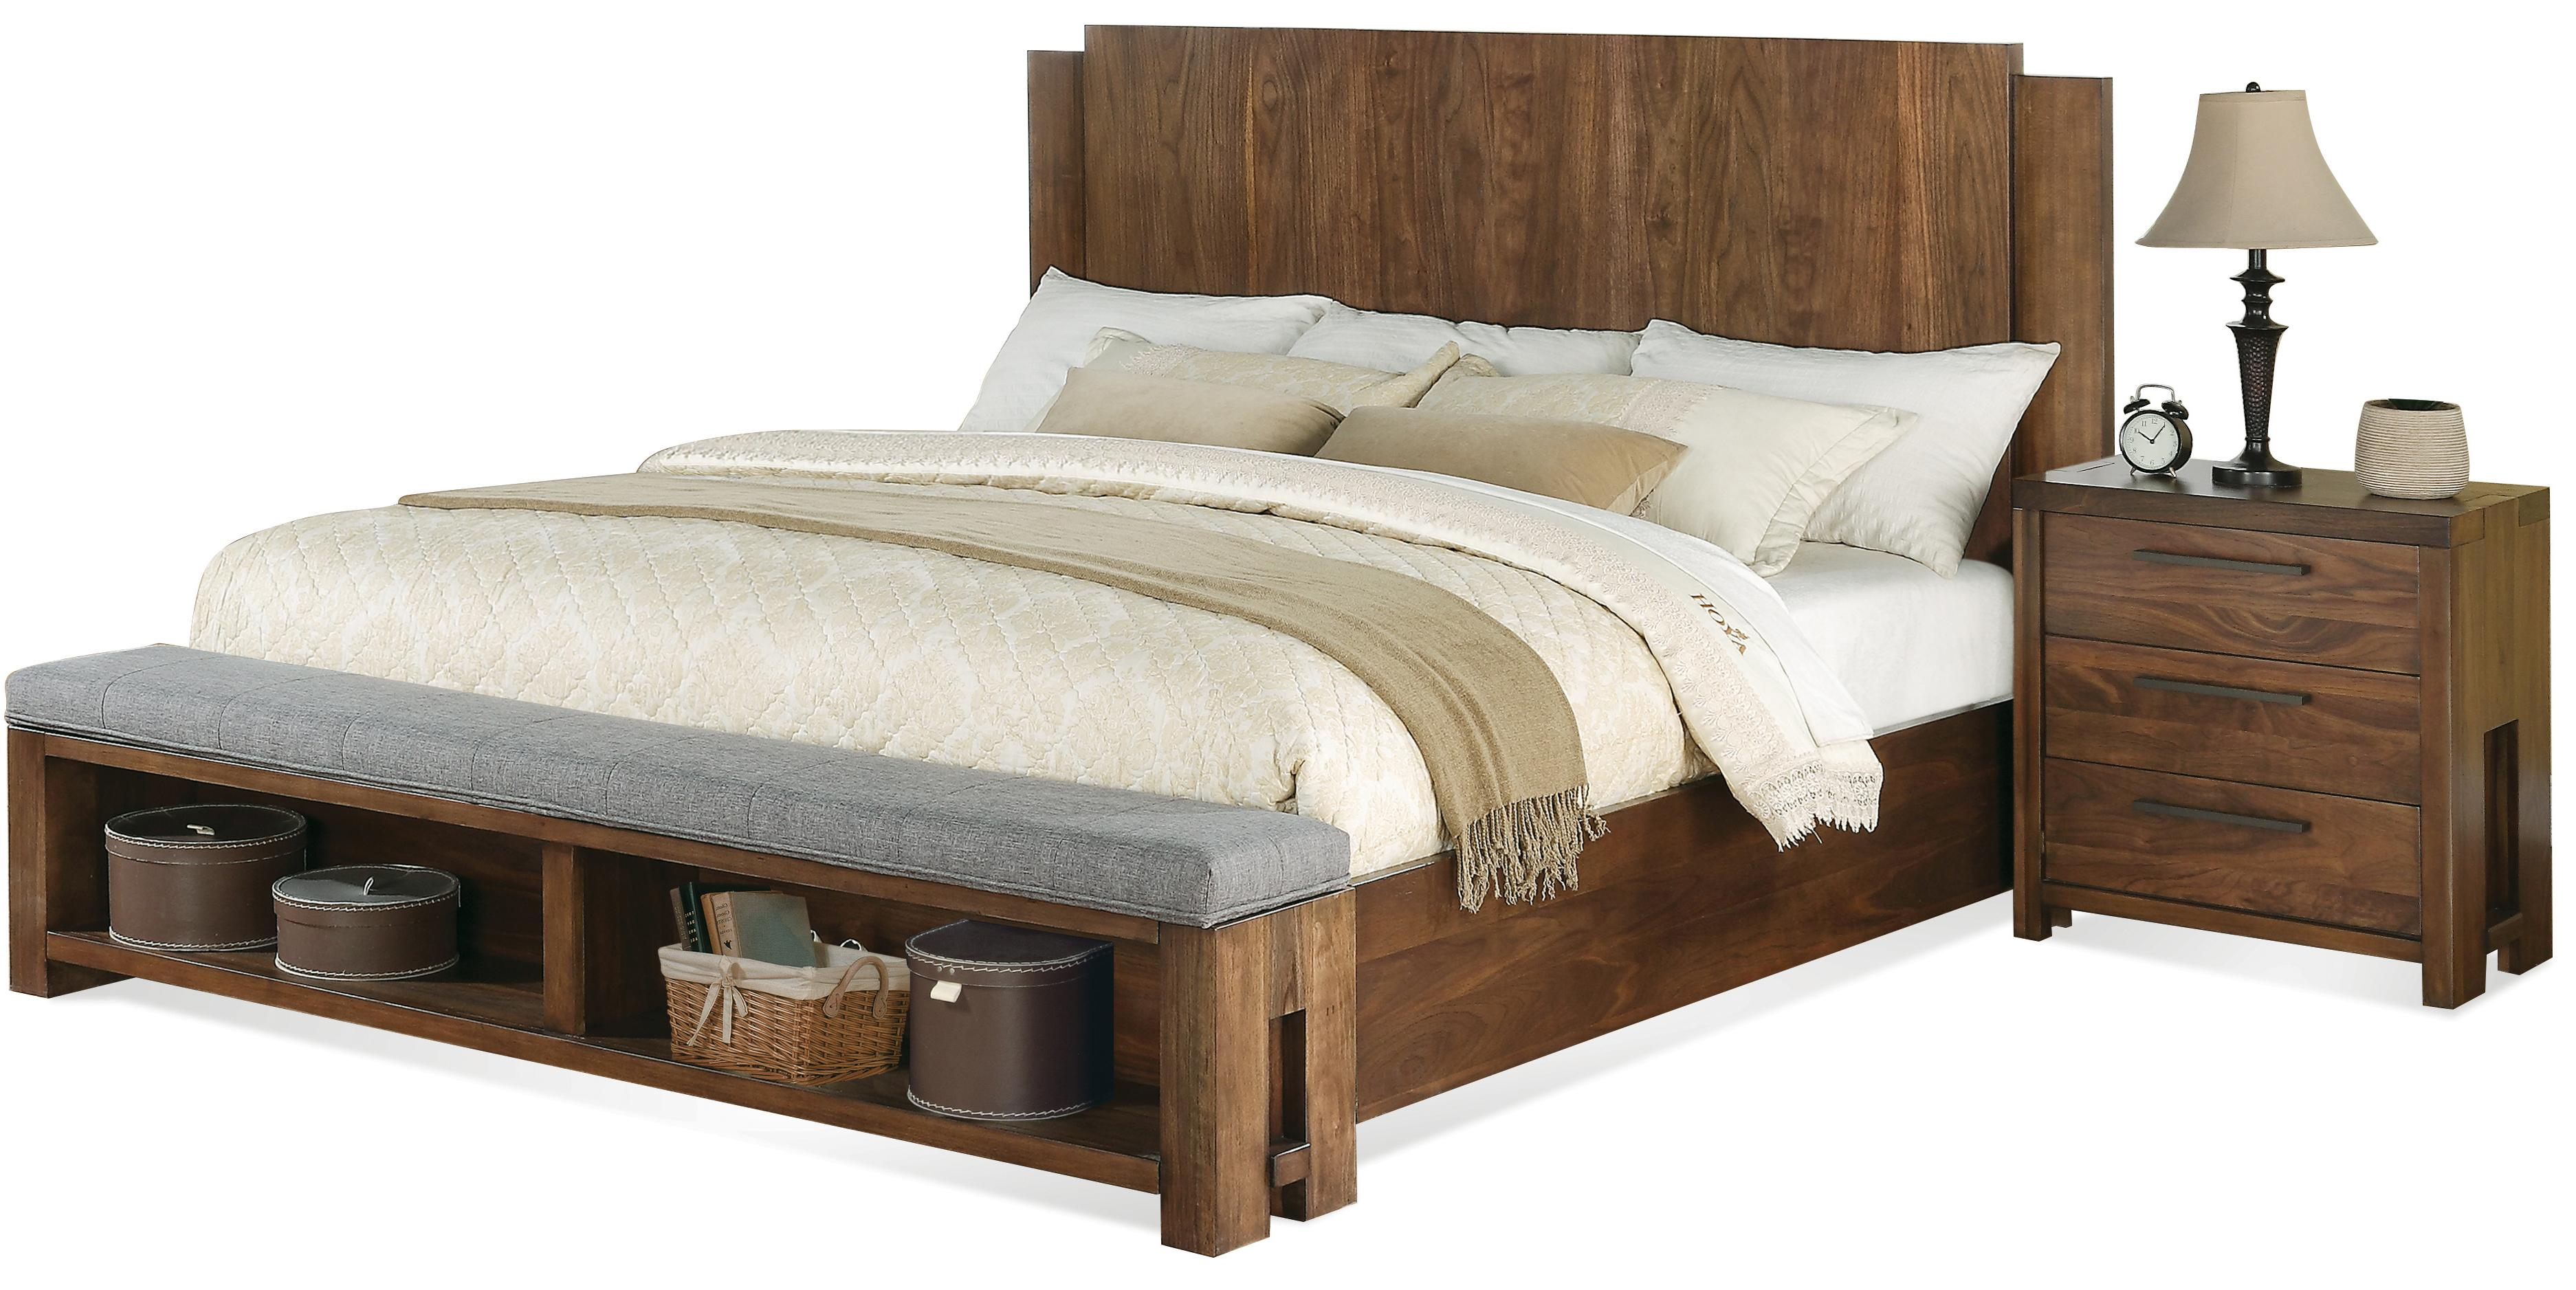 product panel quarters free footboard bed today hillsdale shipping urban set bench home furniture with overstock garden storage